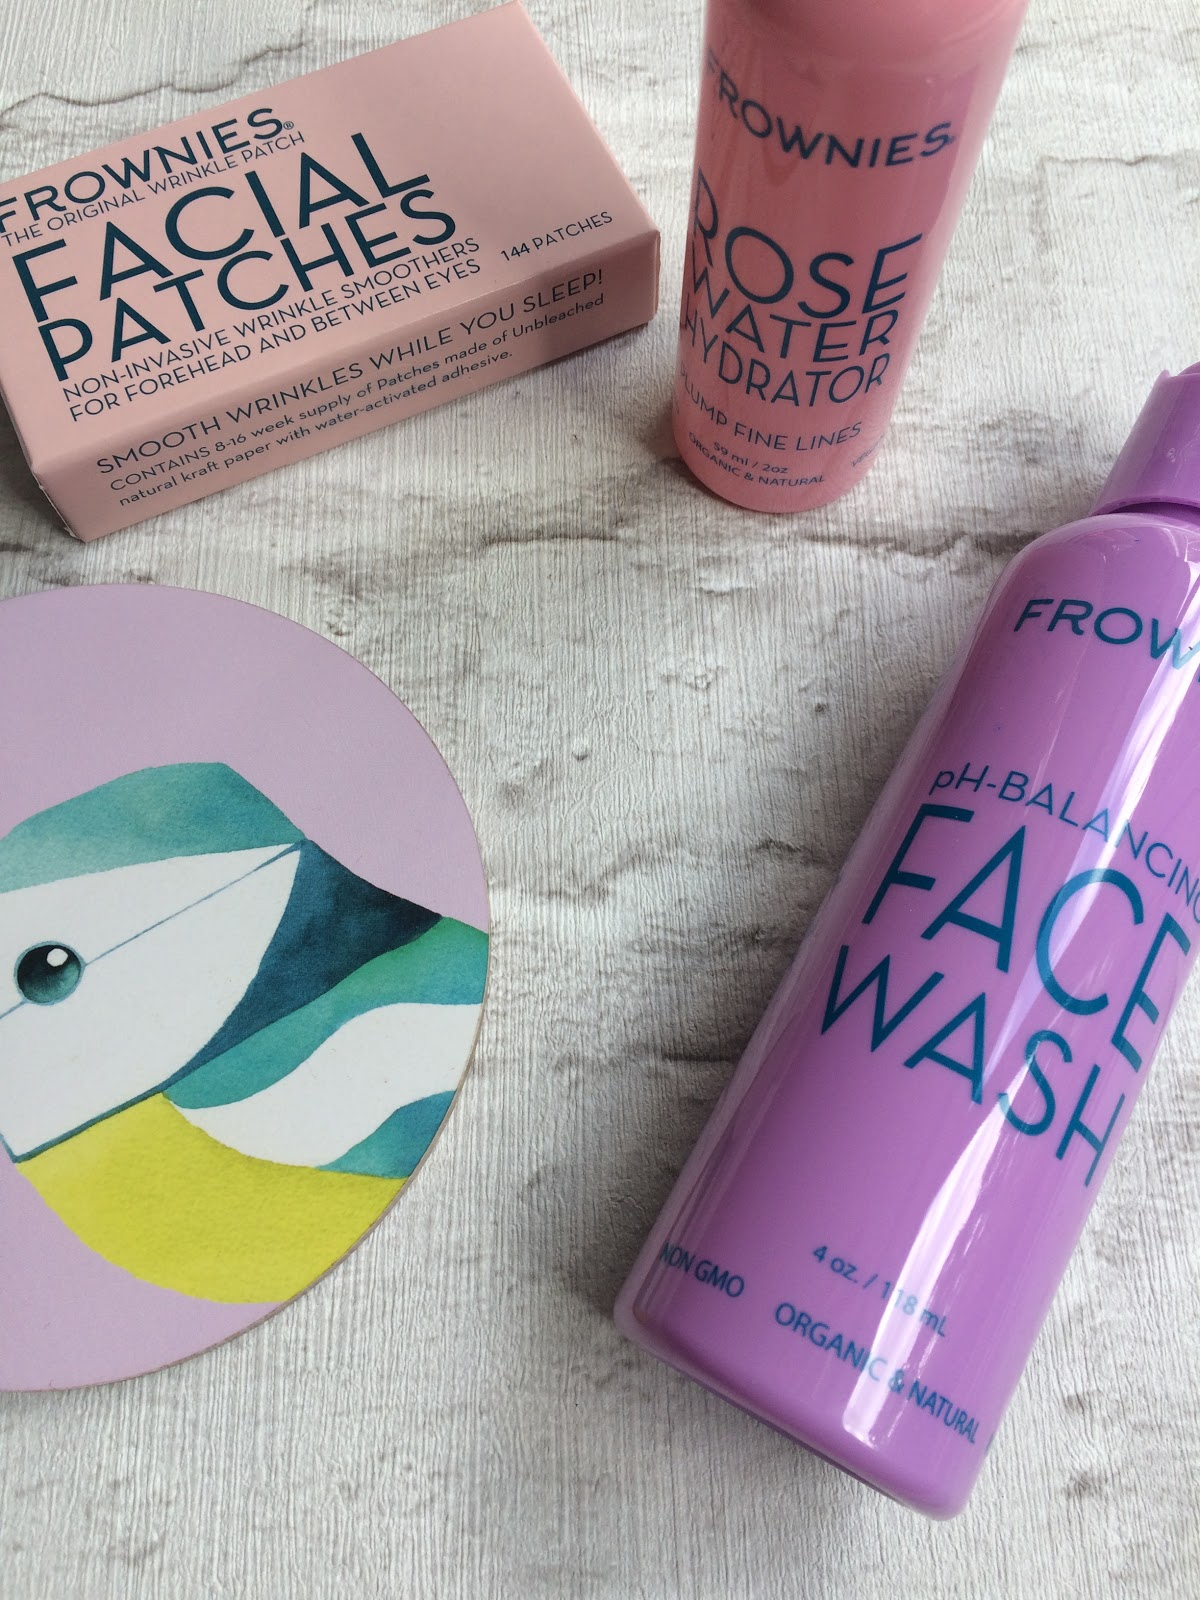 Frownies Facial patches, forehead and between the eyes, face wash and rose water hydrator